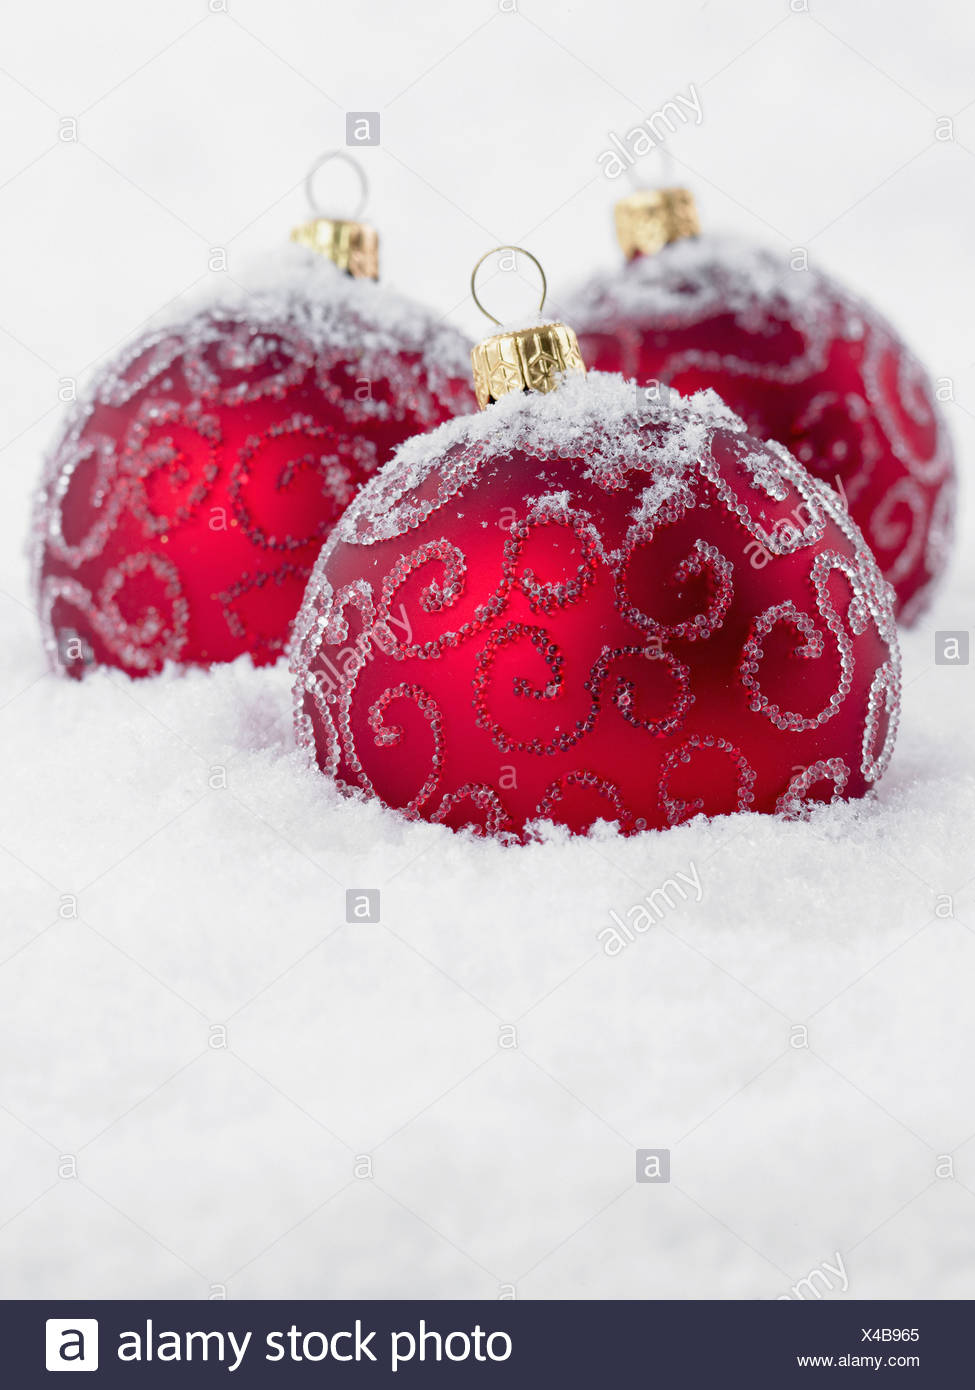 Close up of red Christmas Ornaments in snow Photo Stock